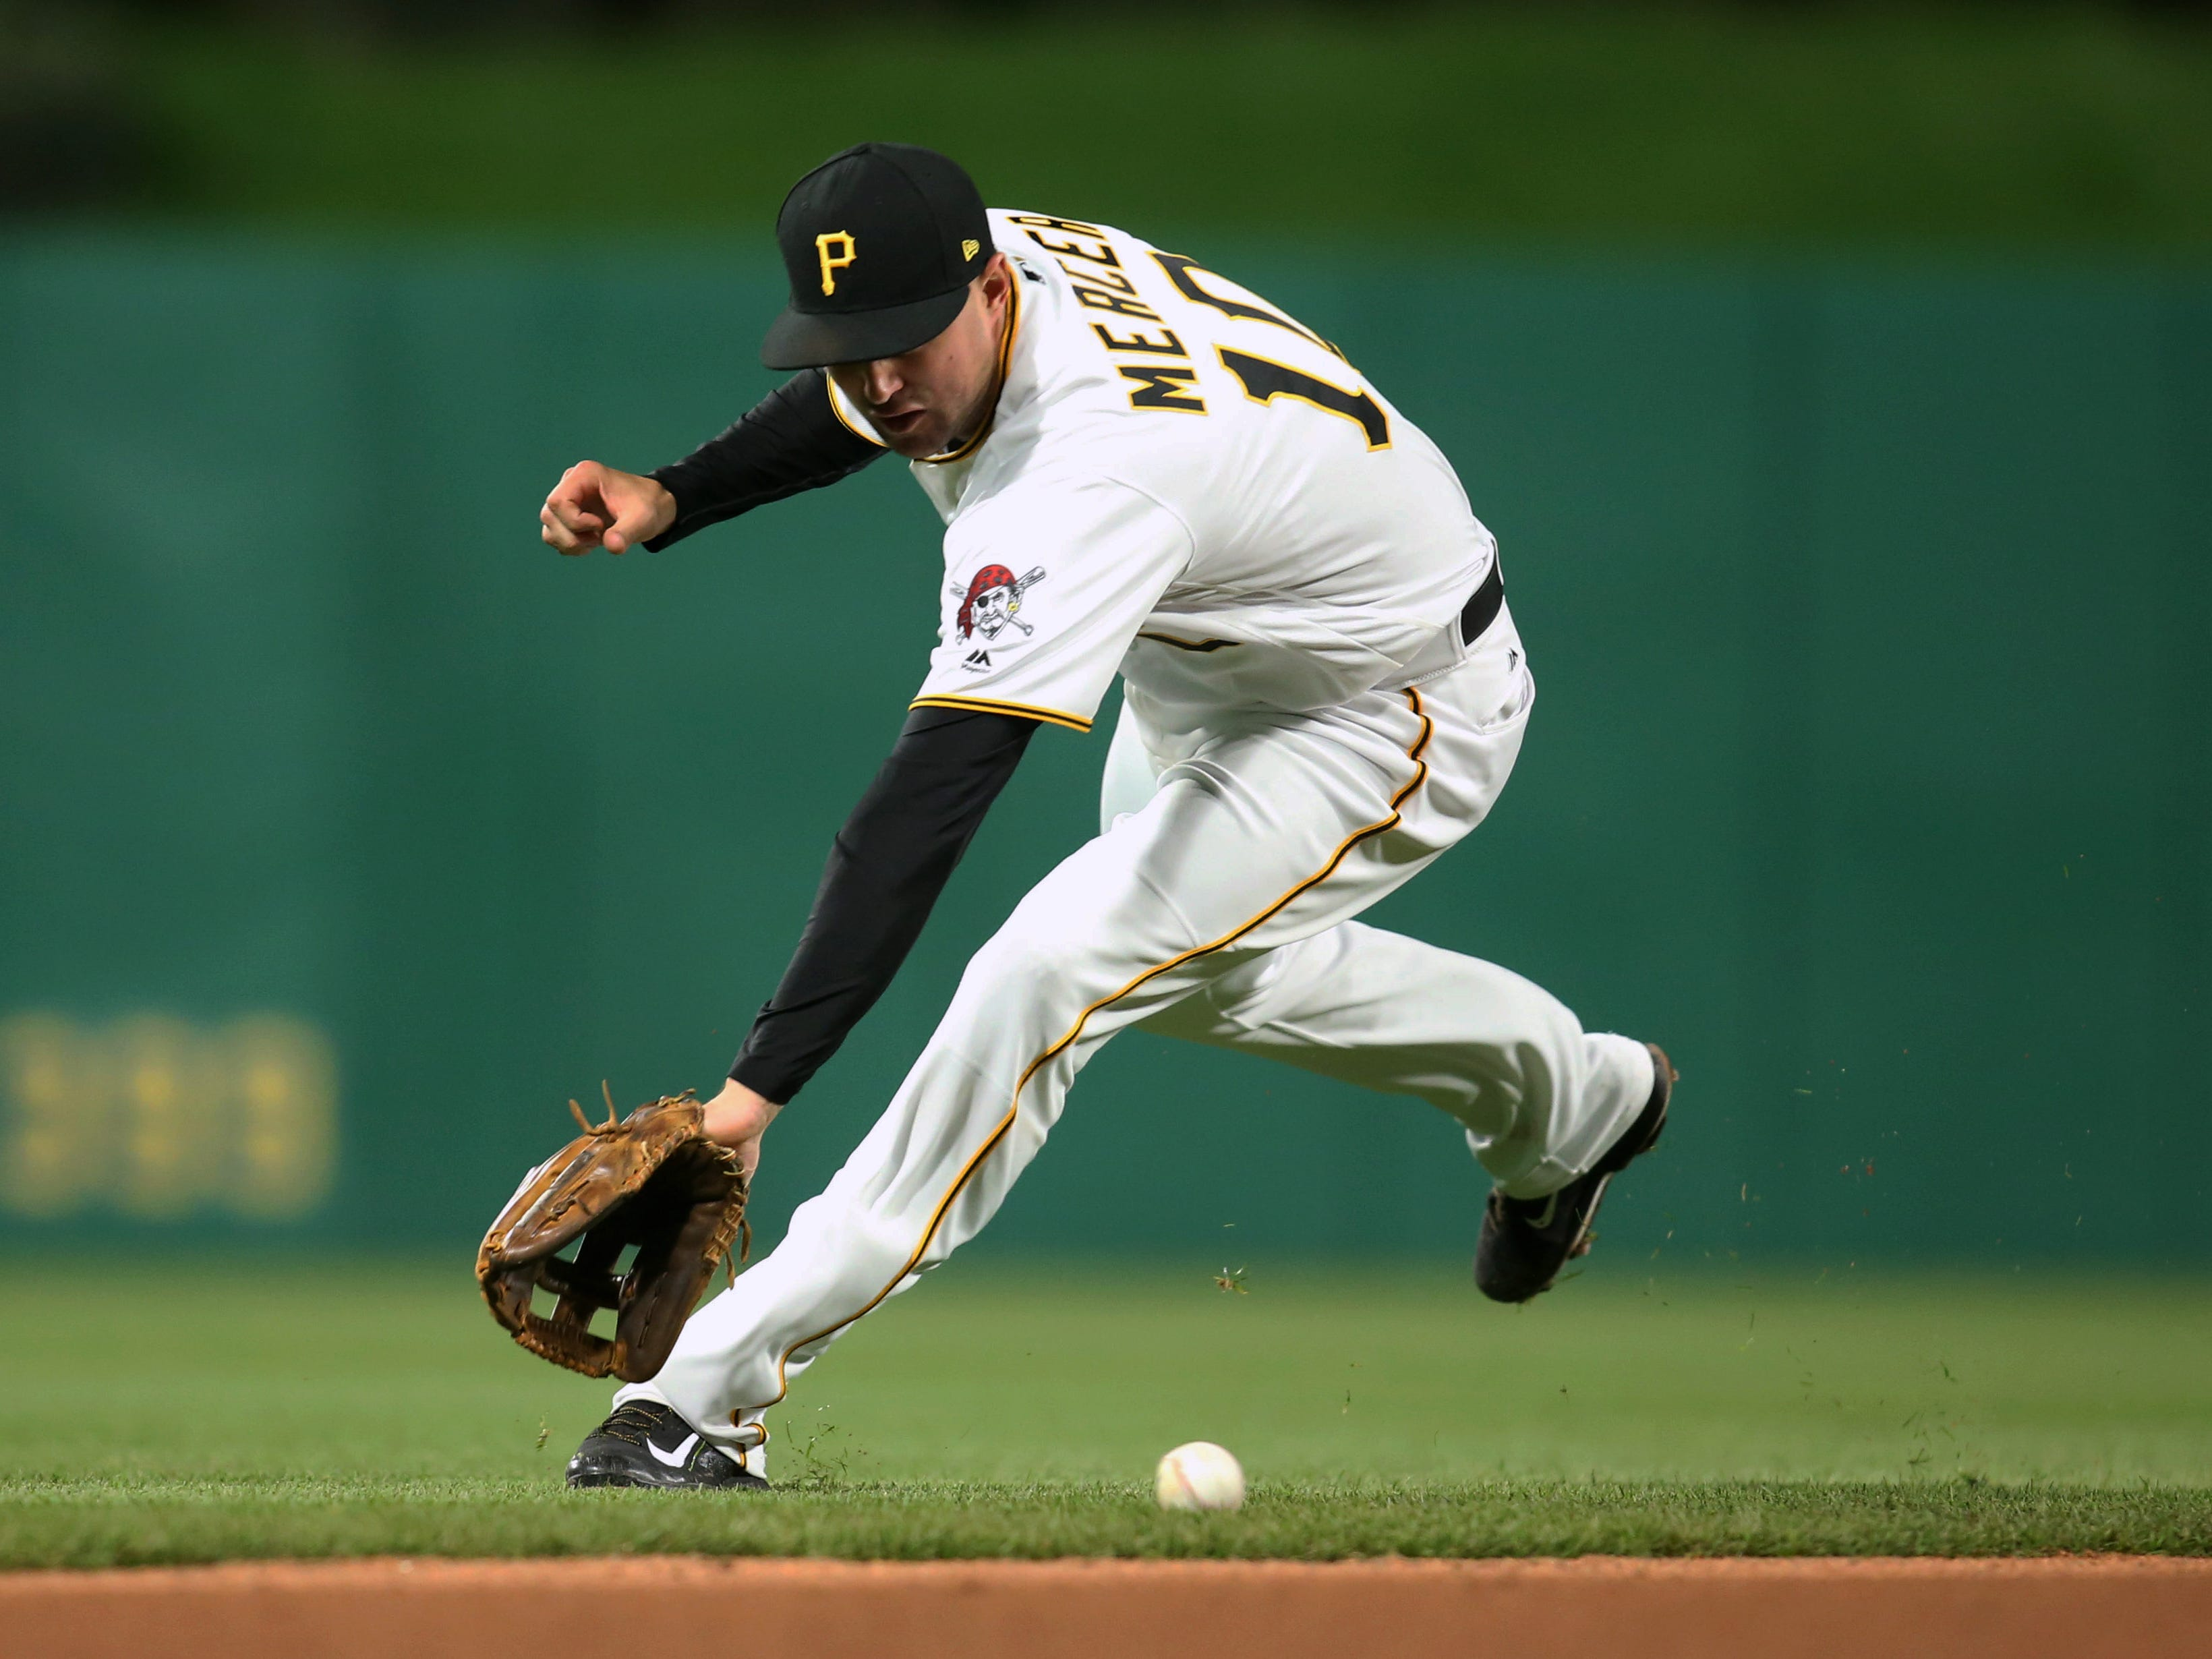 Pittsburgh Pirates shortstop Jordy Mercer fields a ground ball against the Atlanta Braves at PNC Park, April 8, 2017.